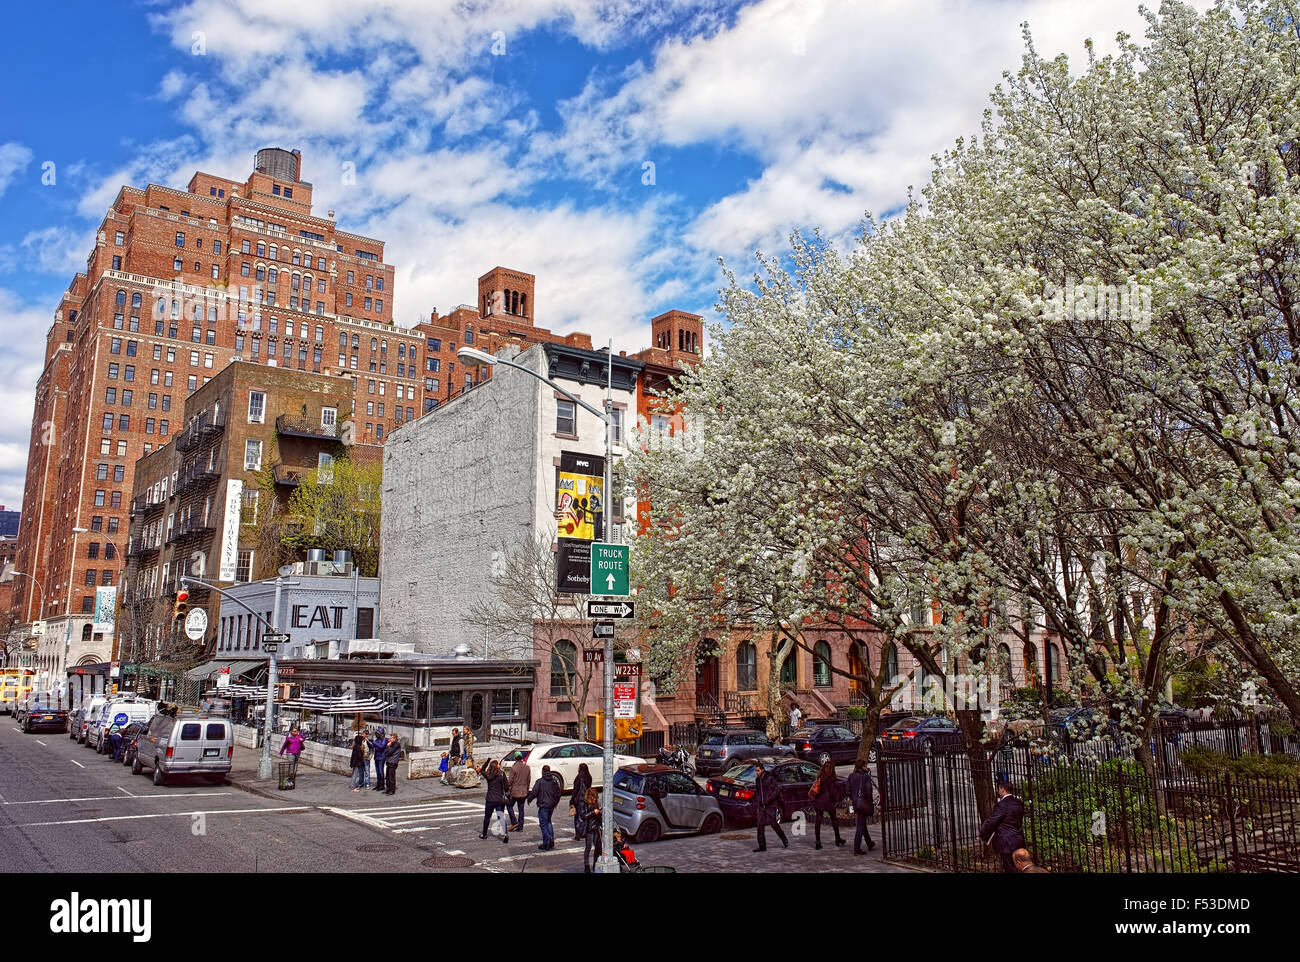 NEW YORK, USA - APRIL 24, 2015: Intersection of 10th Avenue and 22nd Street in Chelsea near Clement Clarke Moore Stock Photo